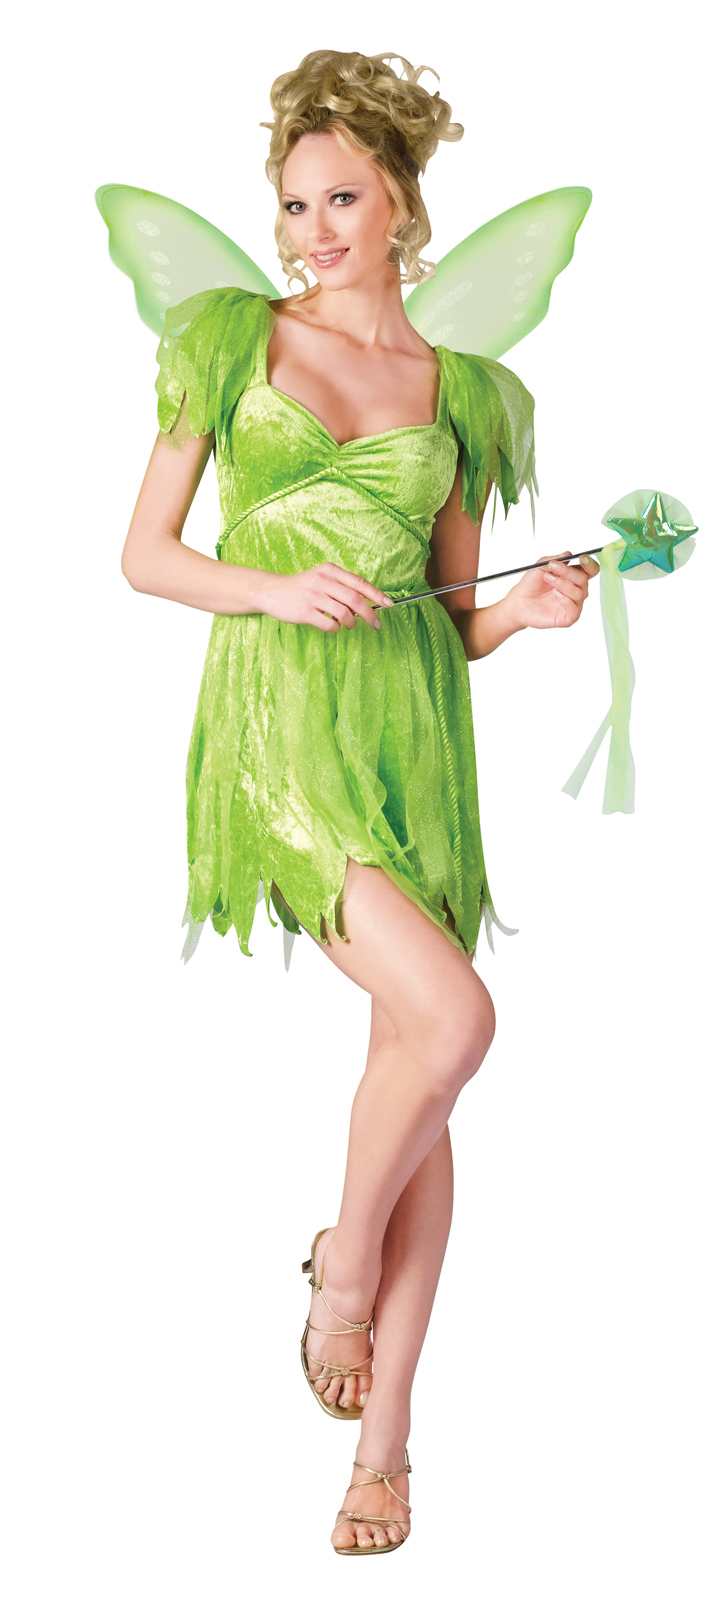 picture How to Create the Fairy or Pixie Look